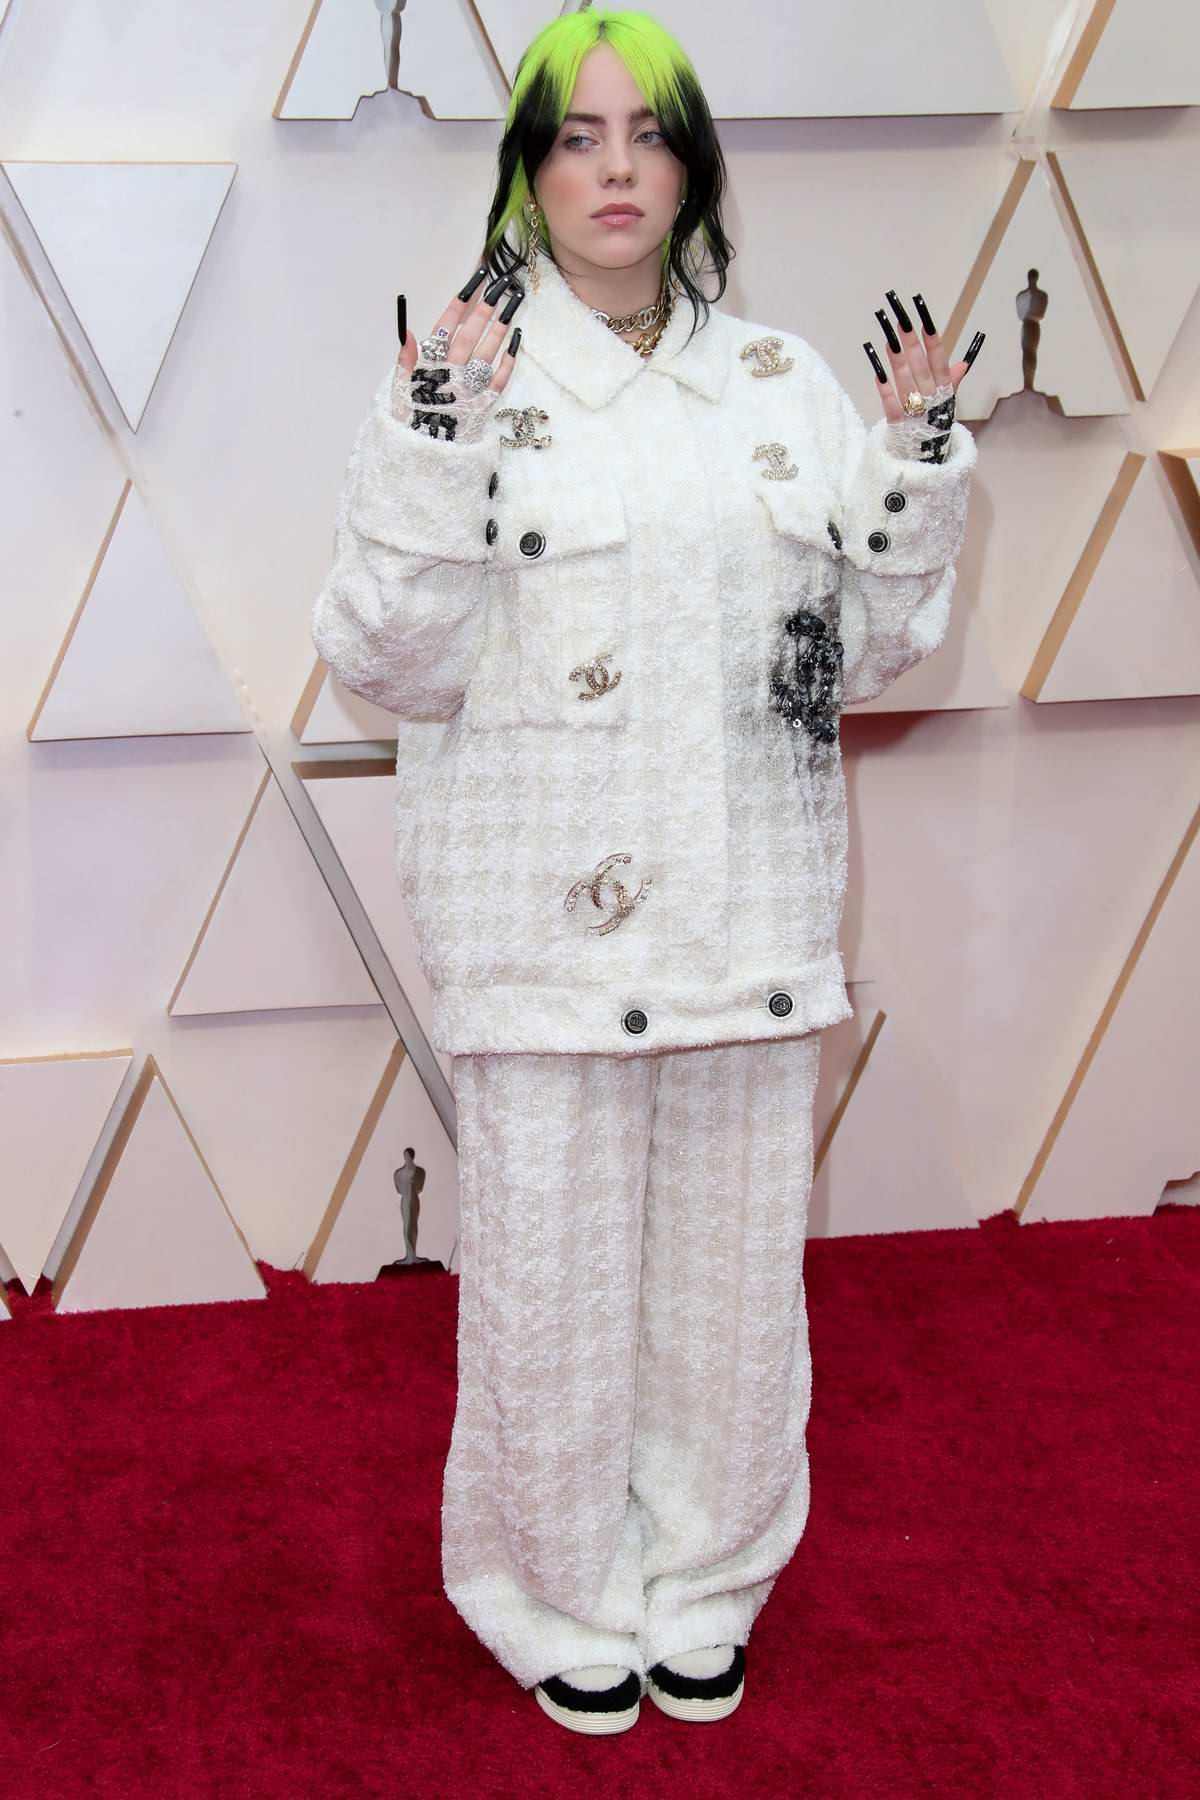 Billie Eilish attends the 92nd Annual Academy Awards at Dolby Theatre in Los Angeles